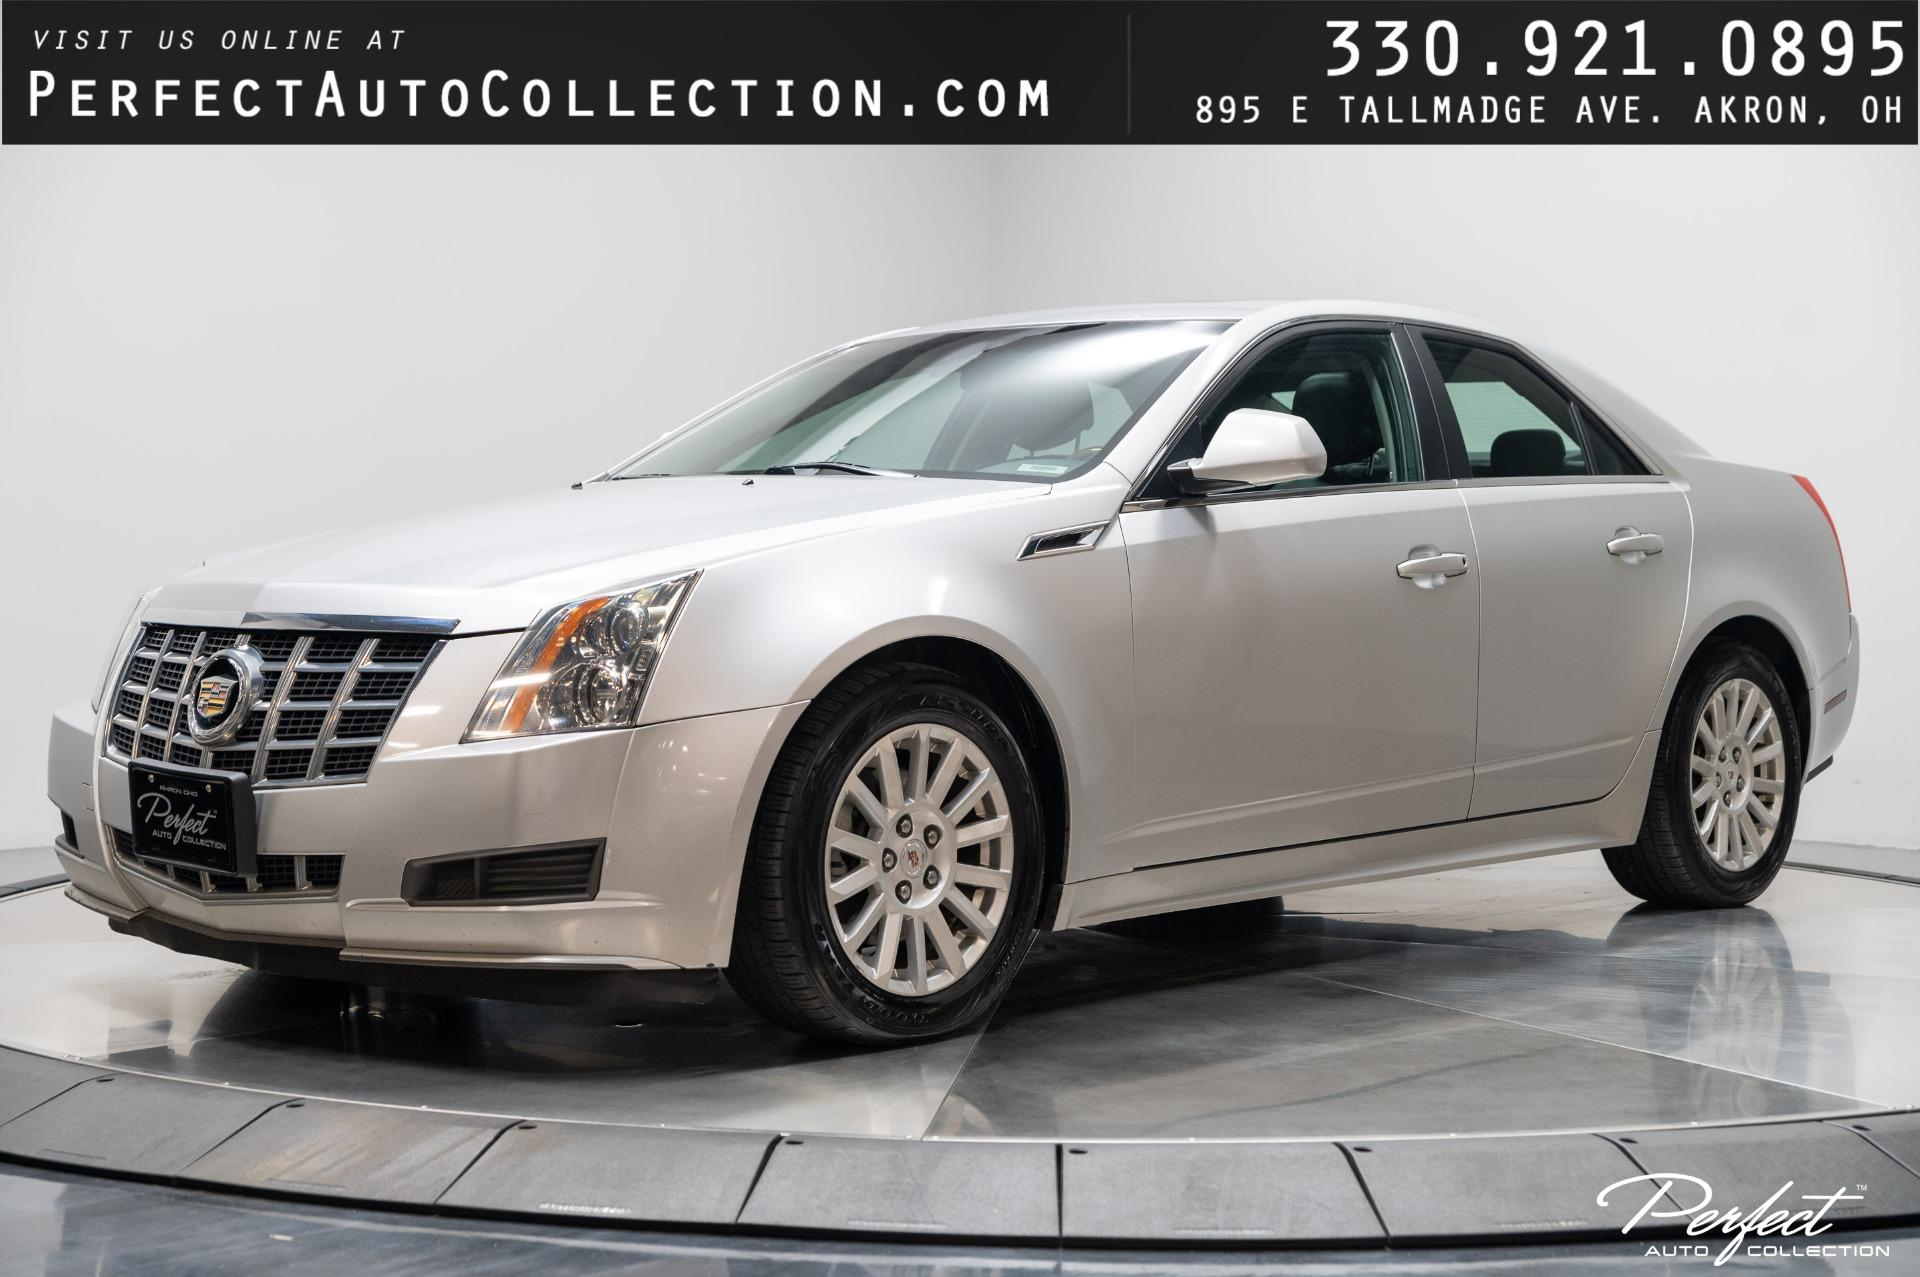 Used 2013 Cadillac CTS 3.0L Luxury for sale $9,995 at Perfect Auto Collection in Akron OH 44310 1